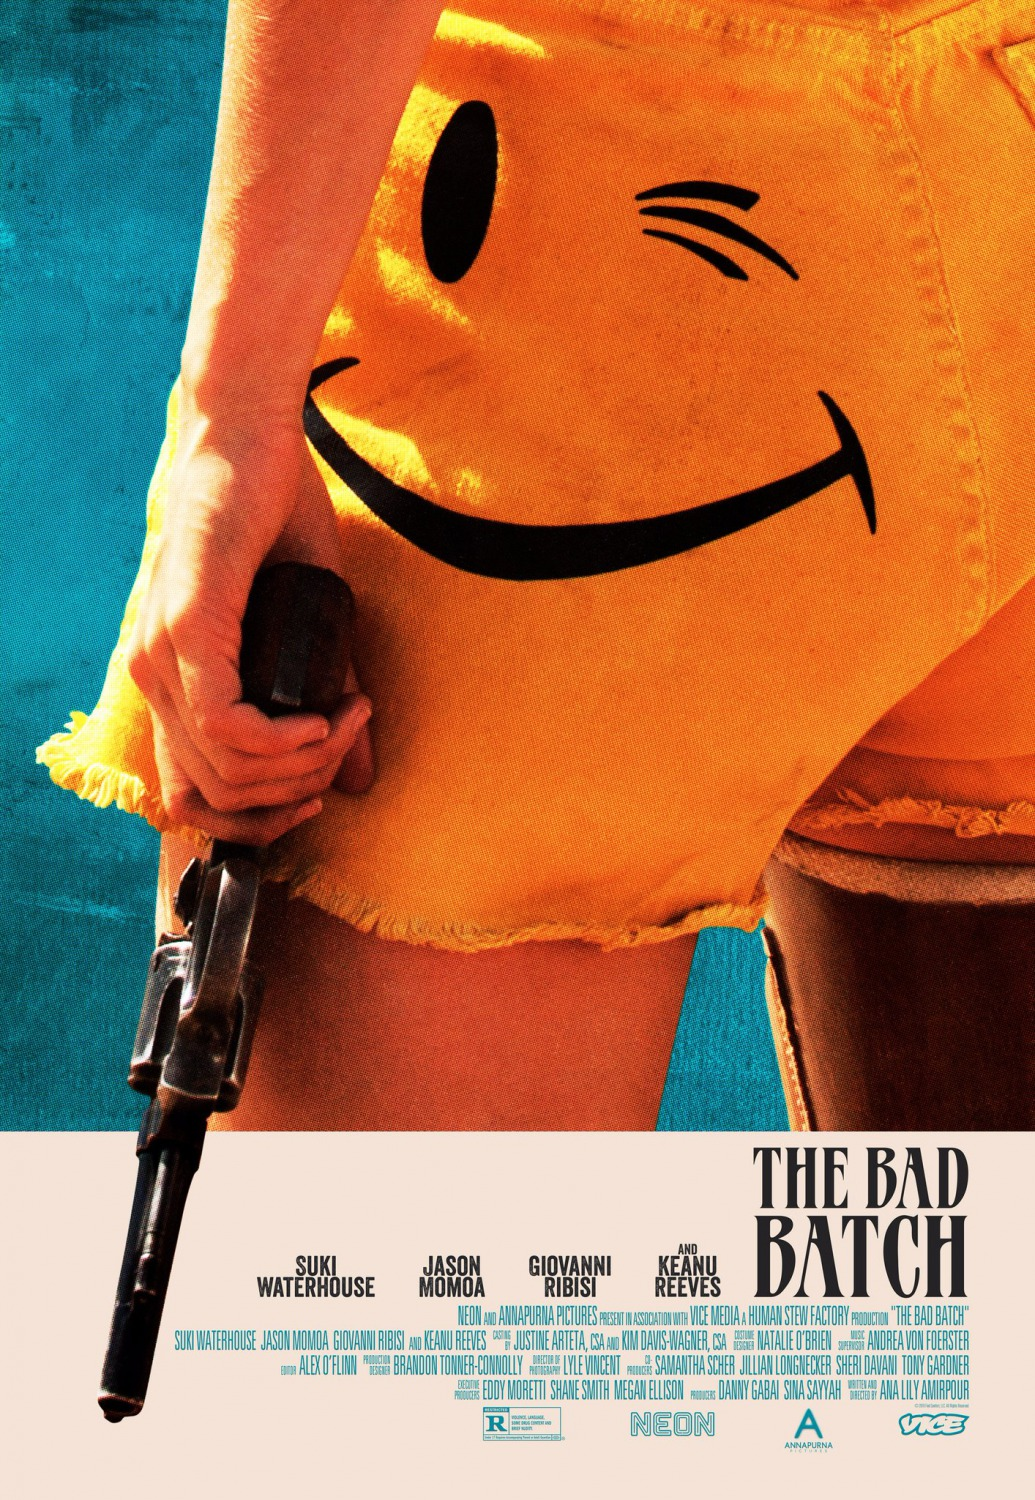 Image result for the bad batch movie poster